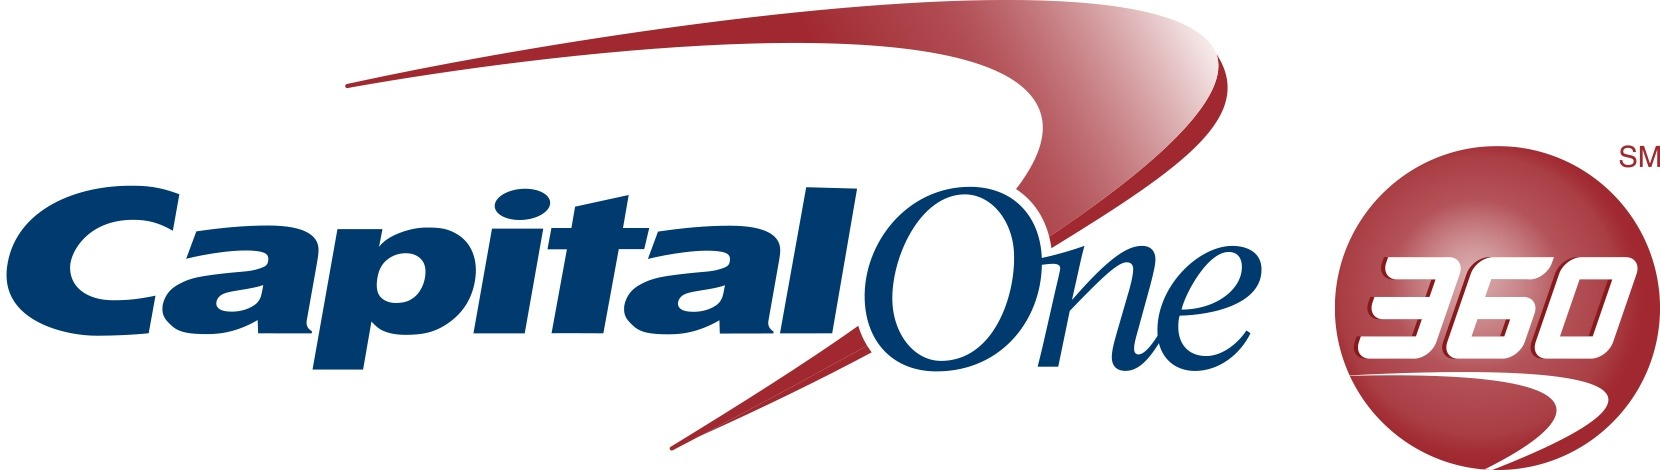 Capital One 360 Cd Account Promotion 260 Apy 12 Month Cd 310